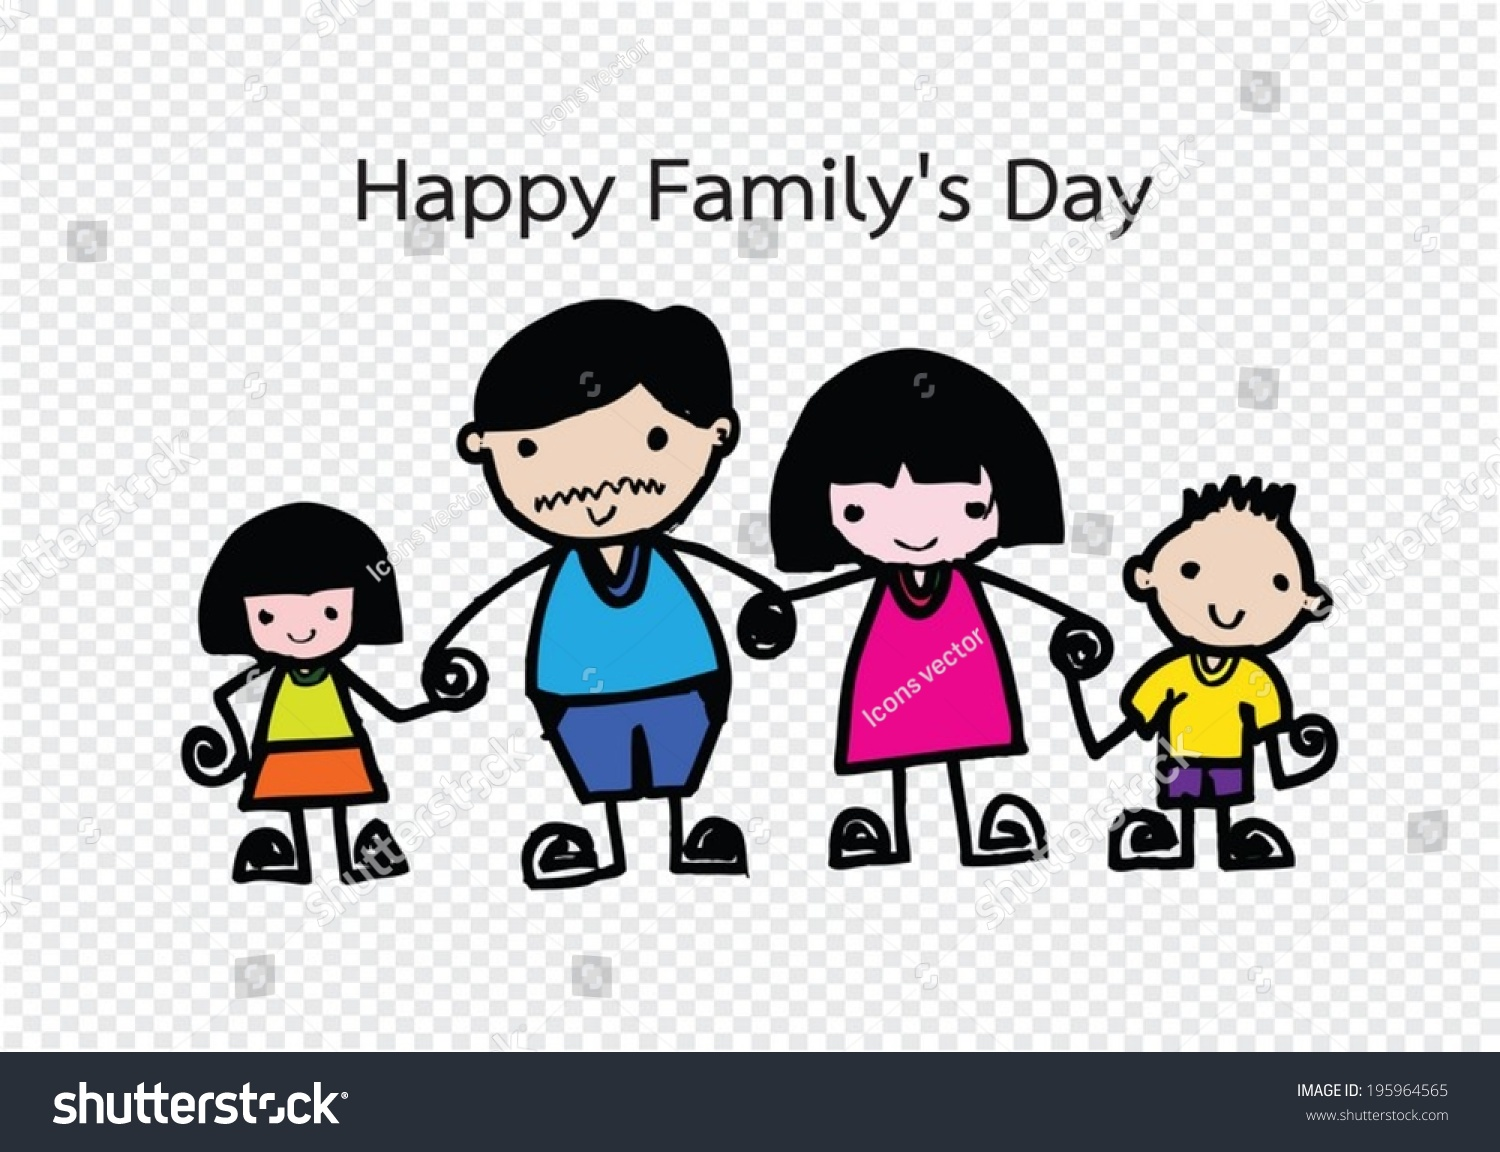 my idea to a happy family 40 amazing family reunion ideas 40 amazing  many happy memories were made and  really good and amazing ideas for friends and familyi used this idea in my.